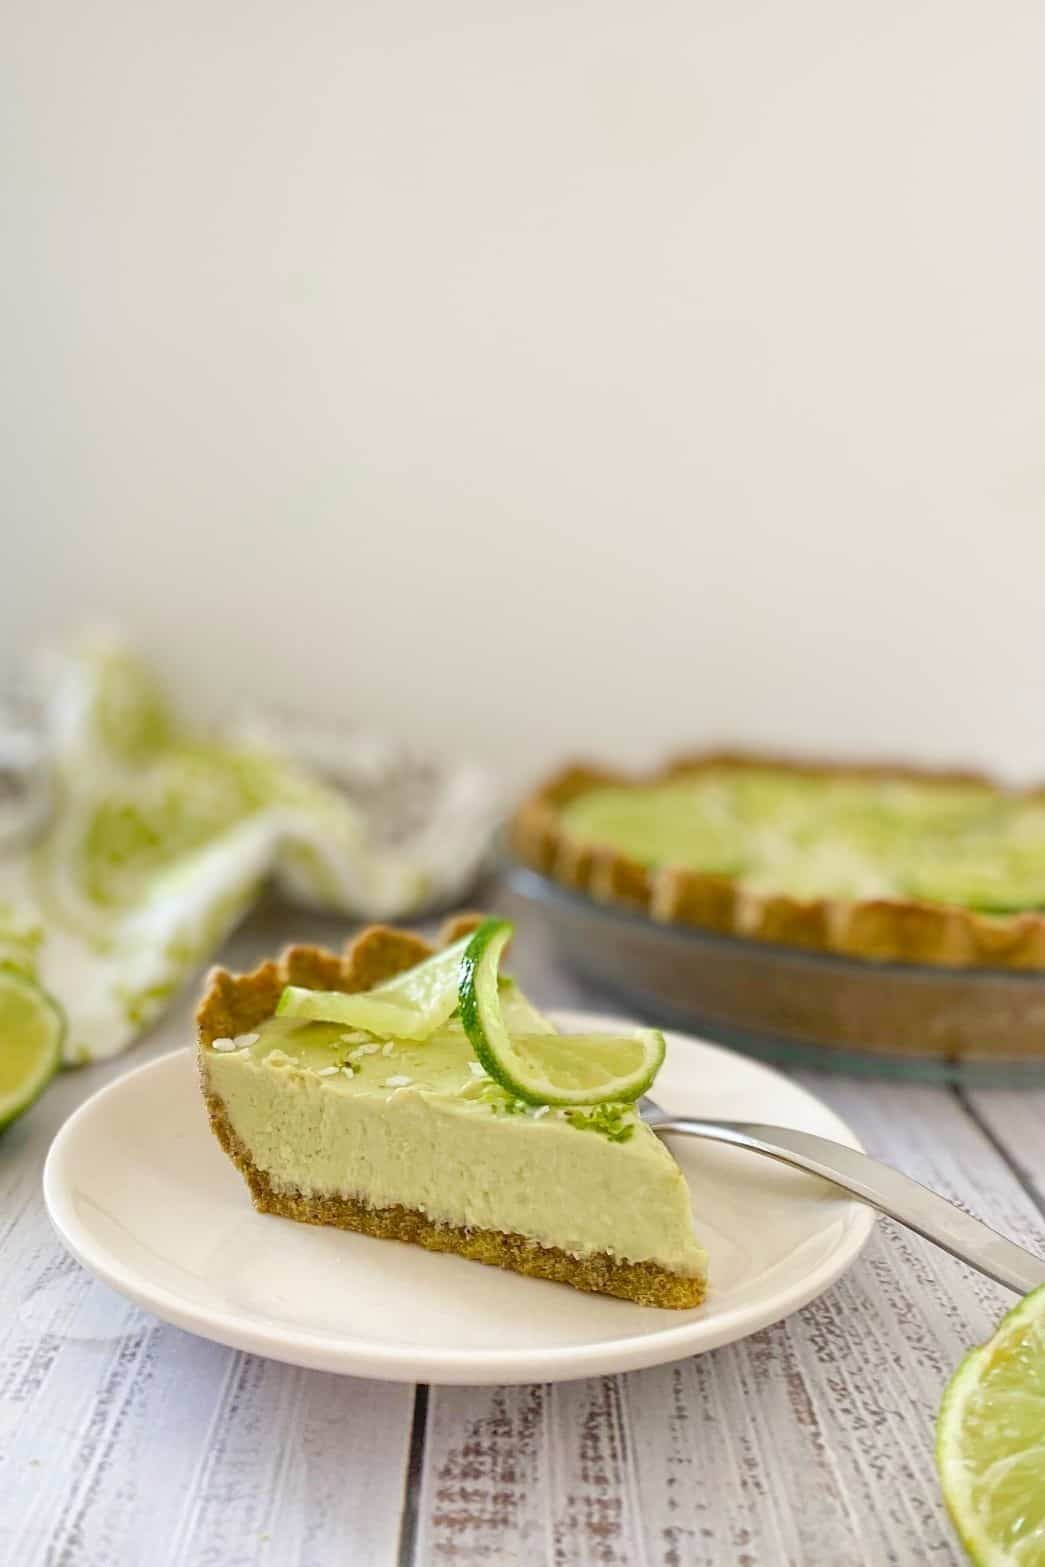 Side view of slice of lime pie with remaining pie in background.